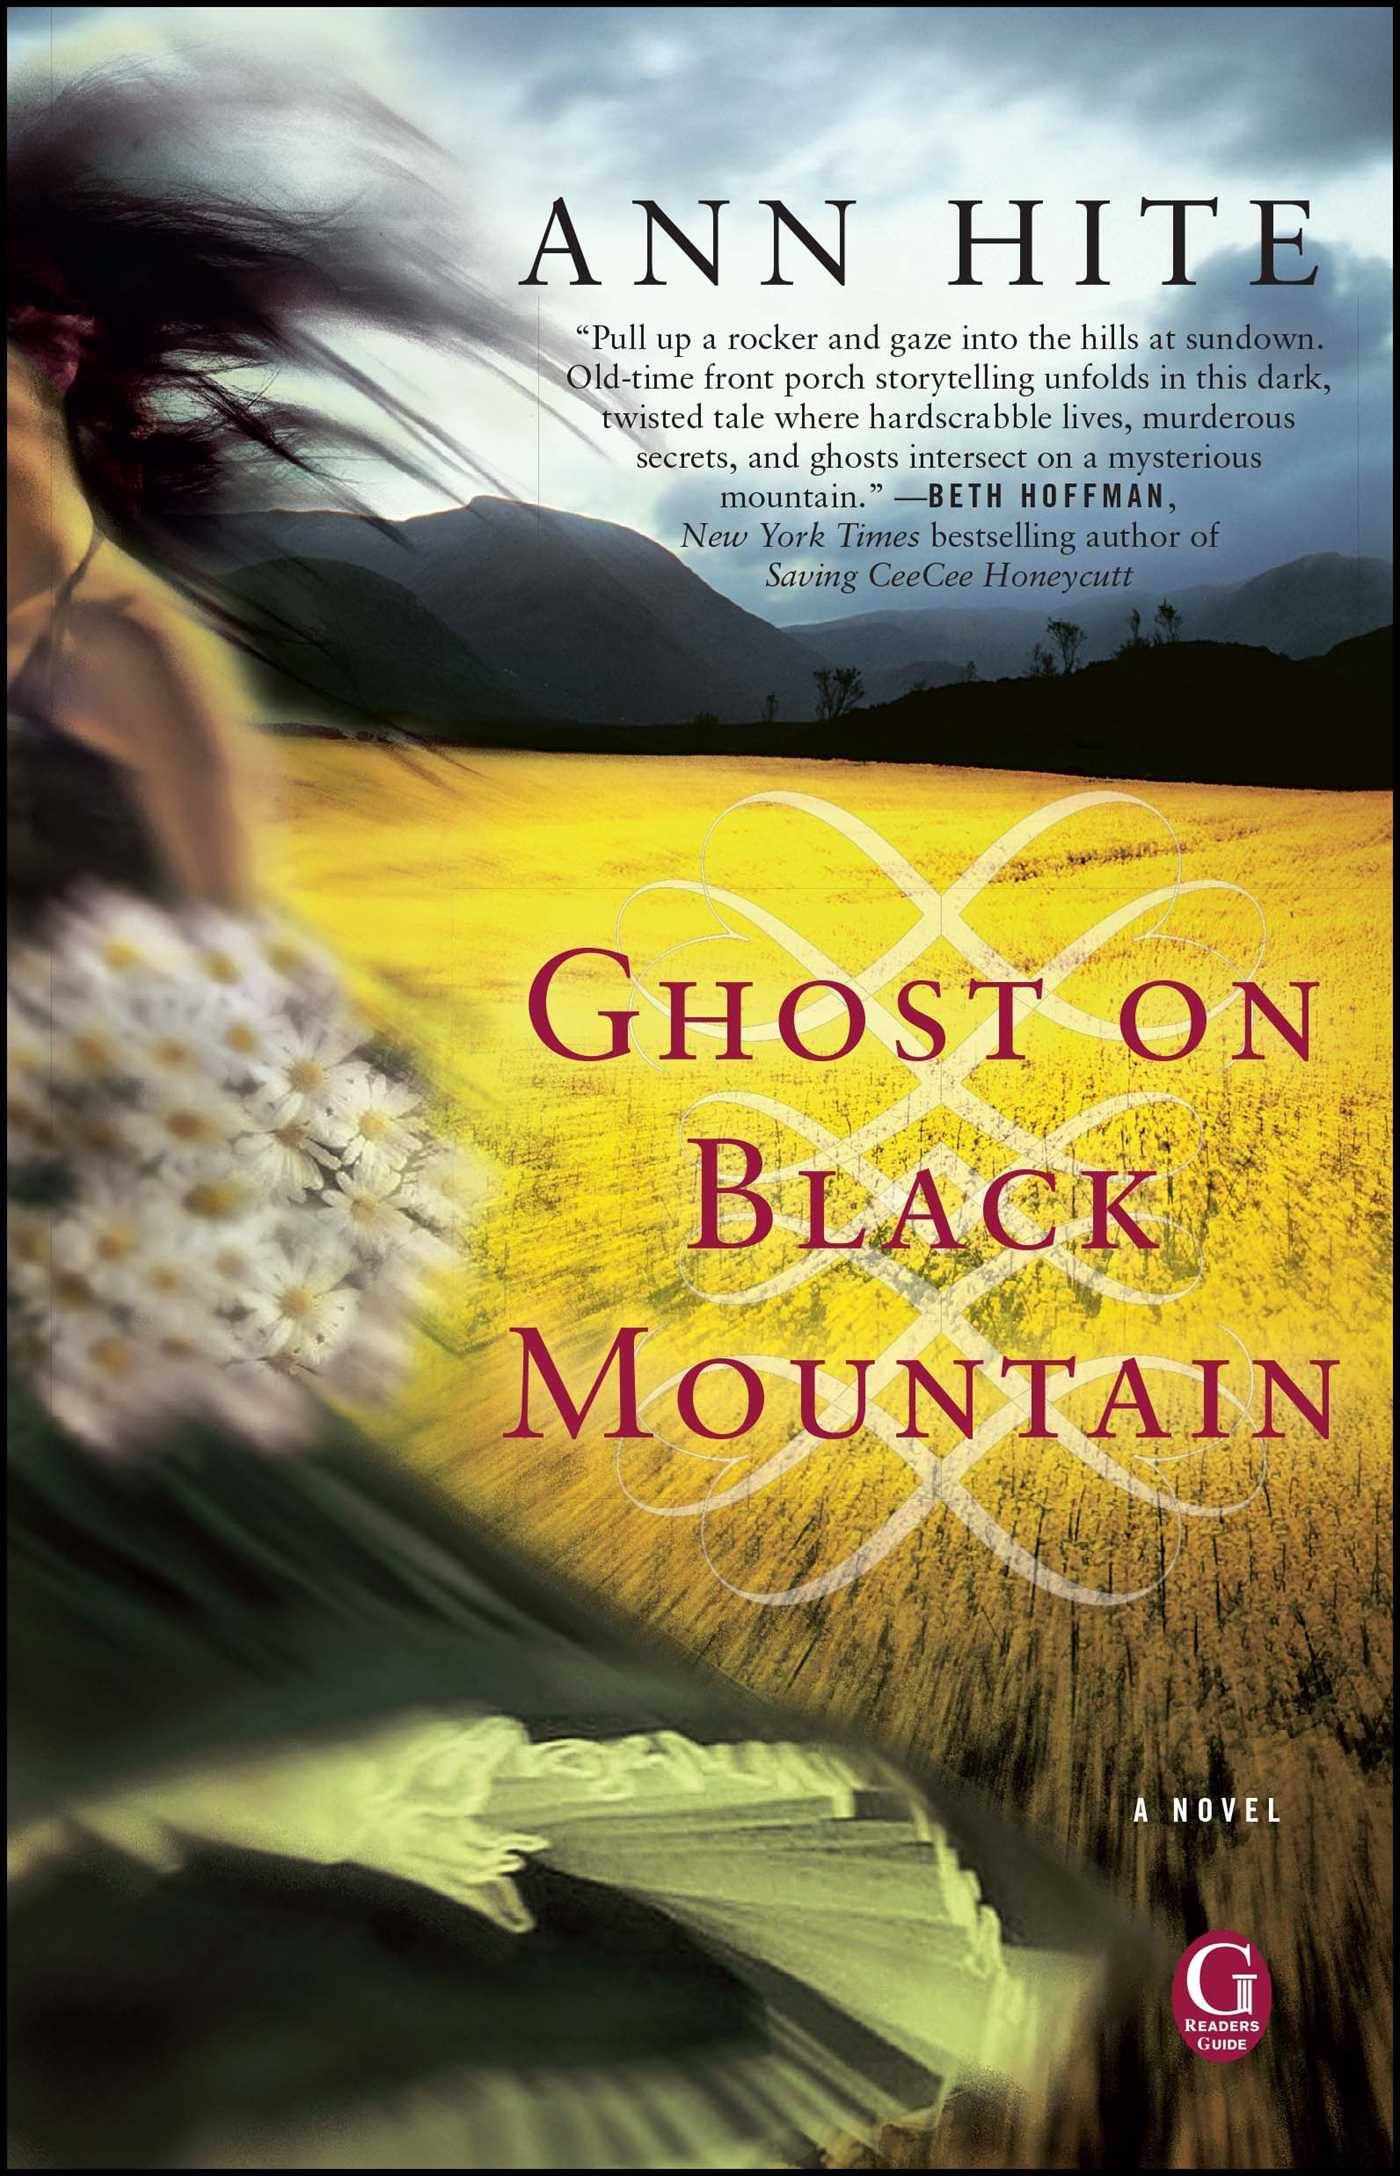 Ghost-on-black-mountain-9781451606423_hr